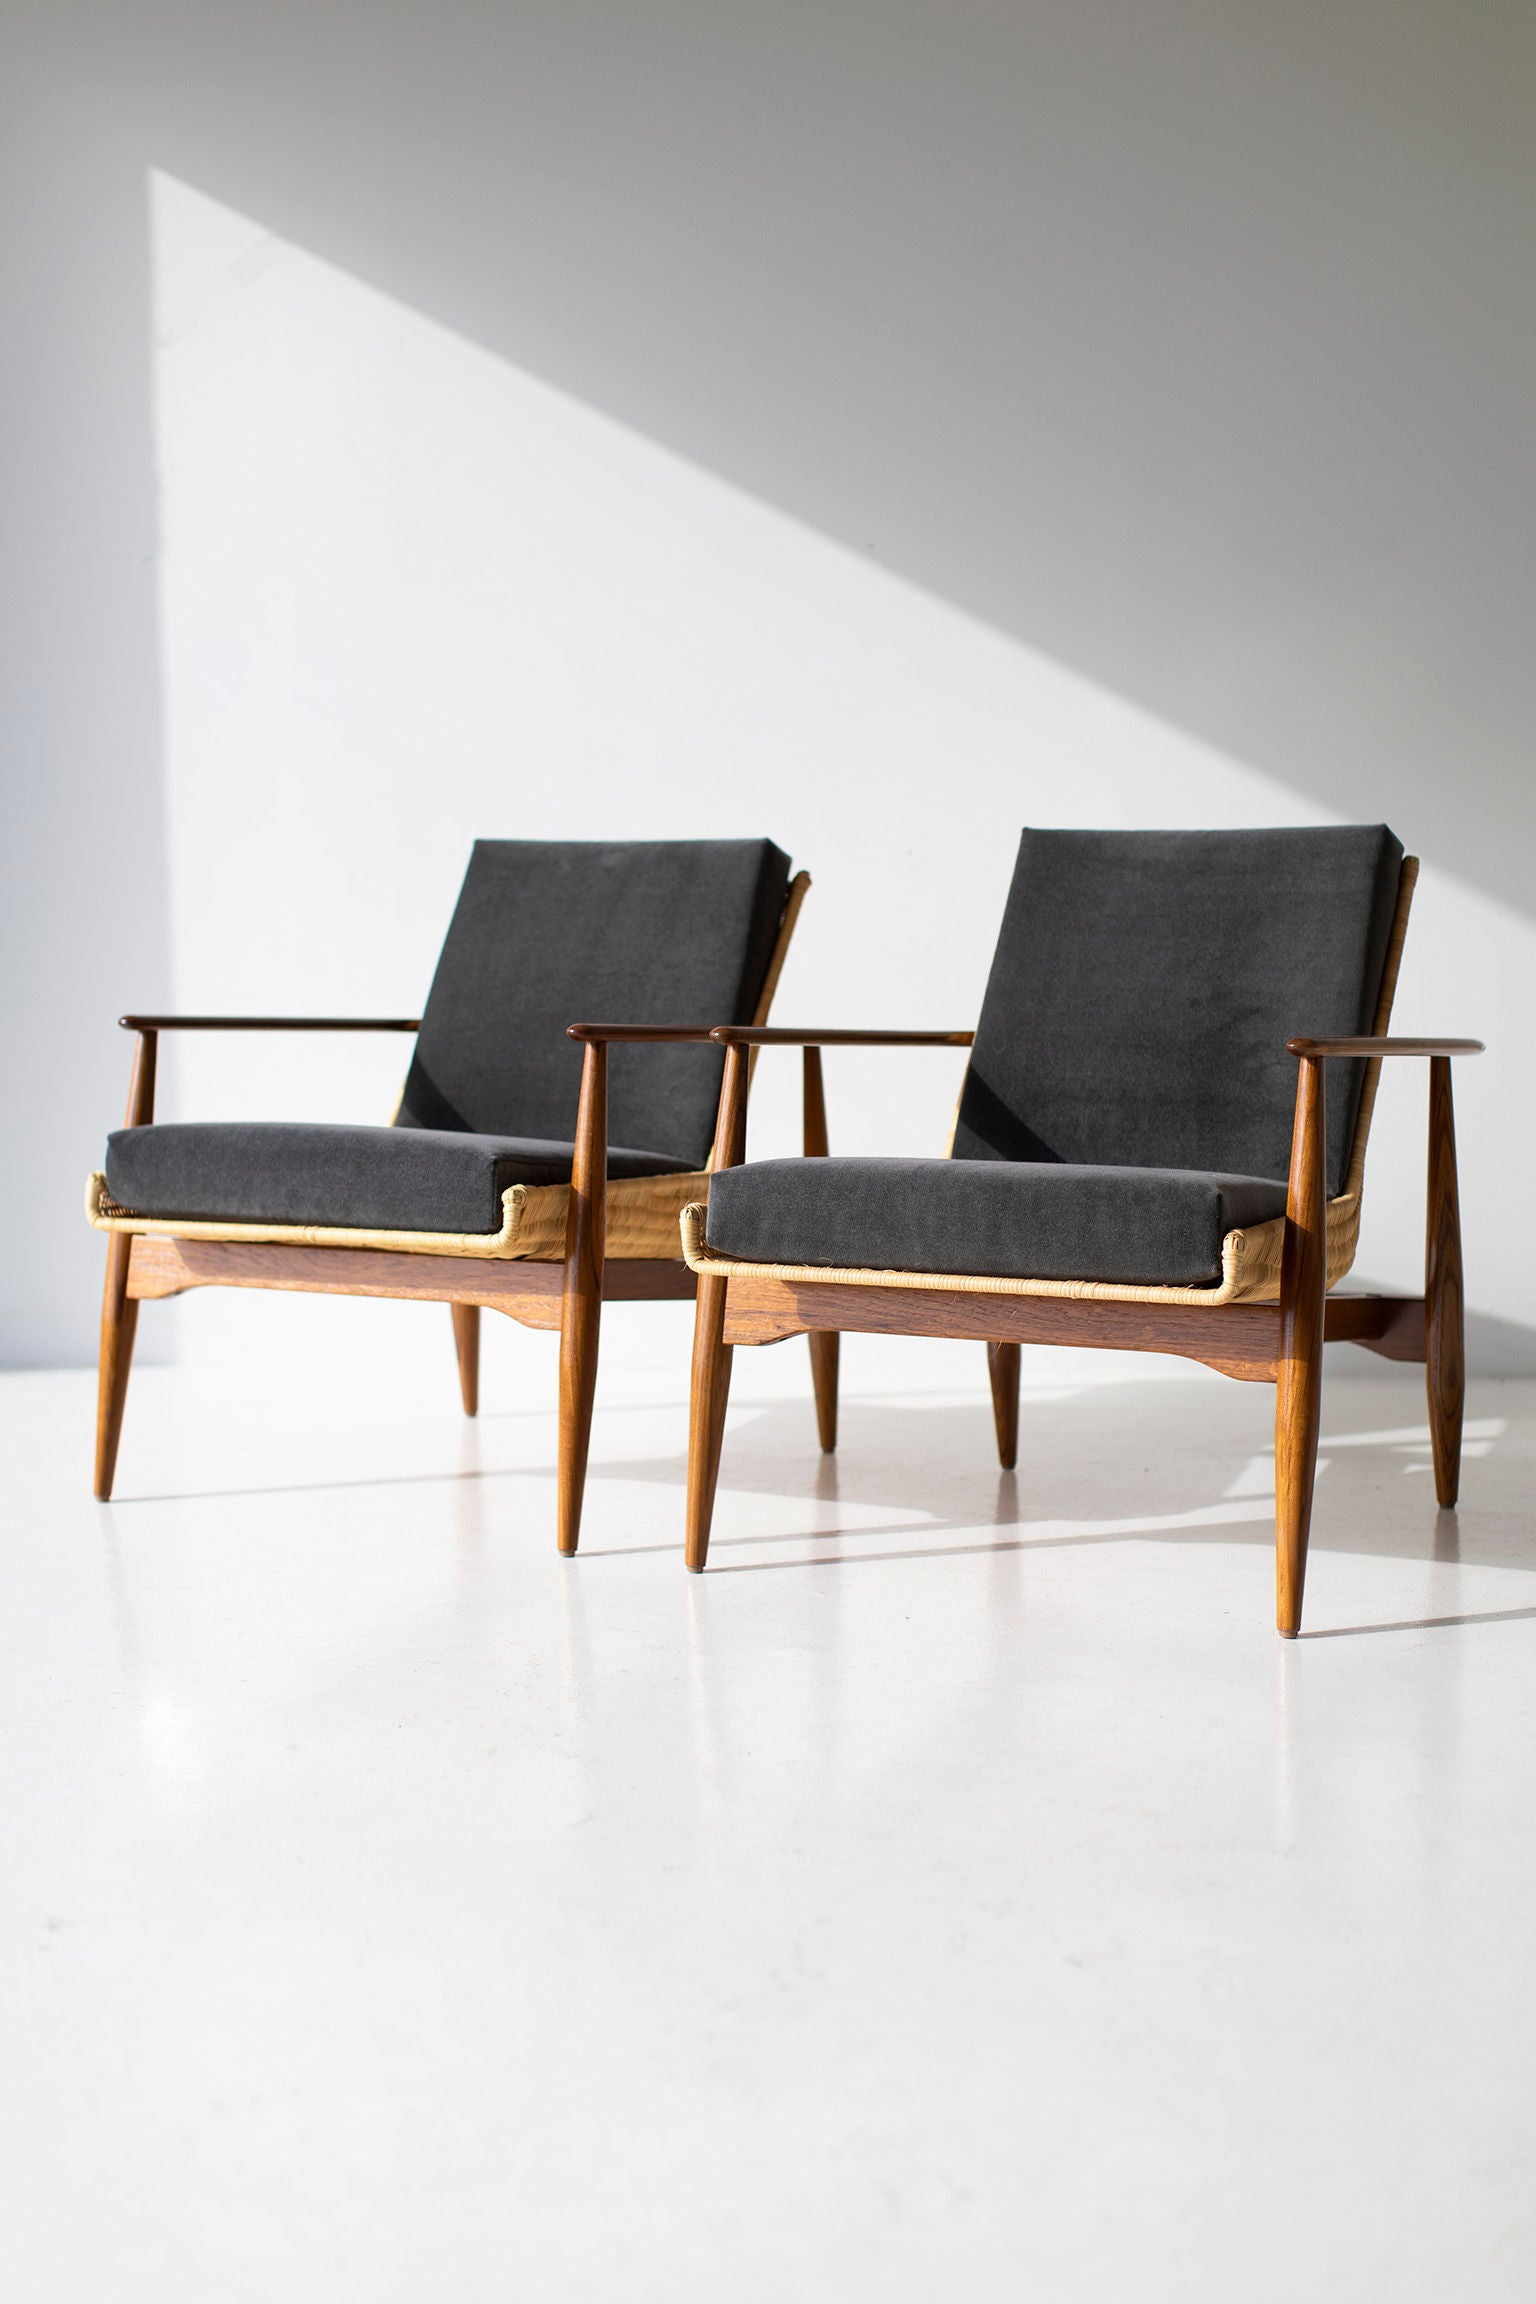 Lawrence-Peabody-Wicker-Lounge-Chairs-02